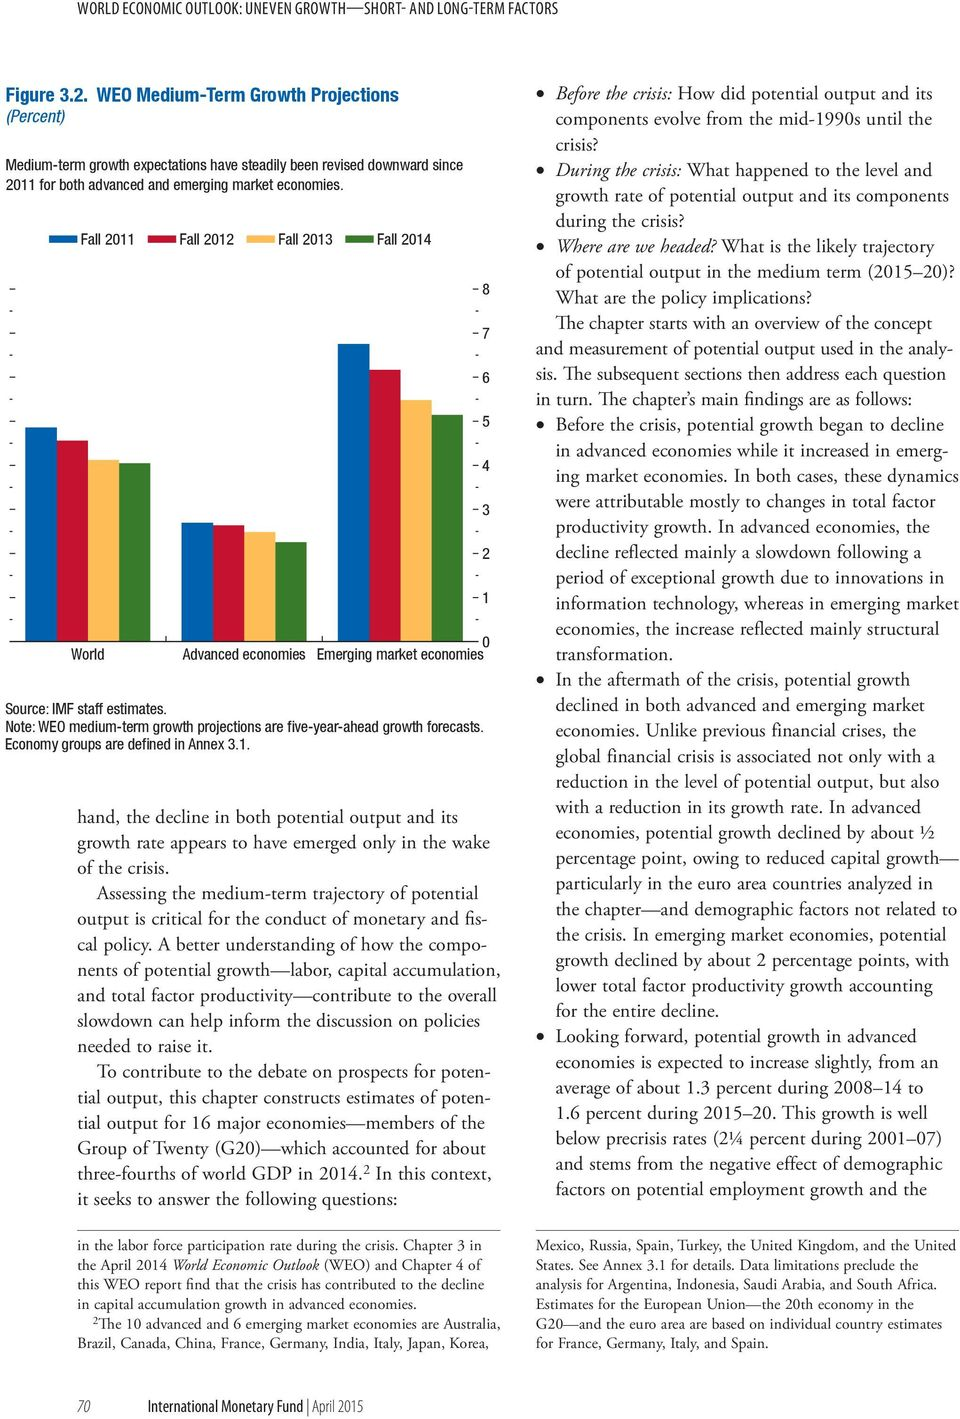 Fall 11 Fall 1 Fall 13 Fall 14 World Advanced economies Emerging market economies Source: IMF staff estimates. Note: WEO medium-term growth projections are five-year-ahead growth forecasts.